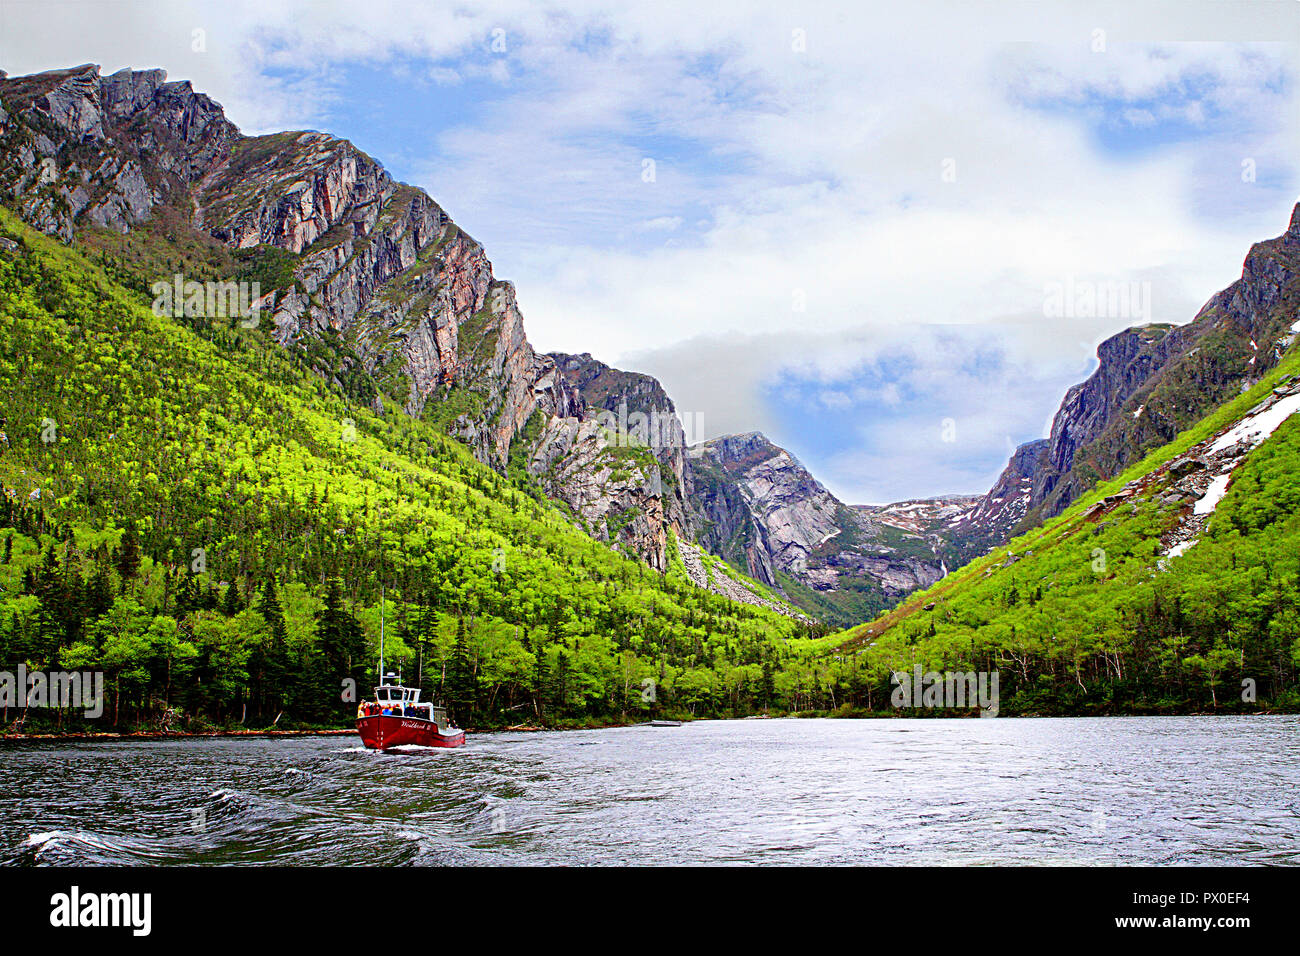 Tour boat in Western Brook Pond, Gros Morne National Park, Newfoundland, Canada, Tabletop Mountains, inland fjiord - Stock Image